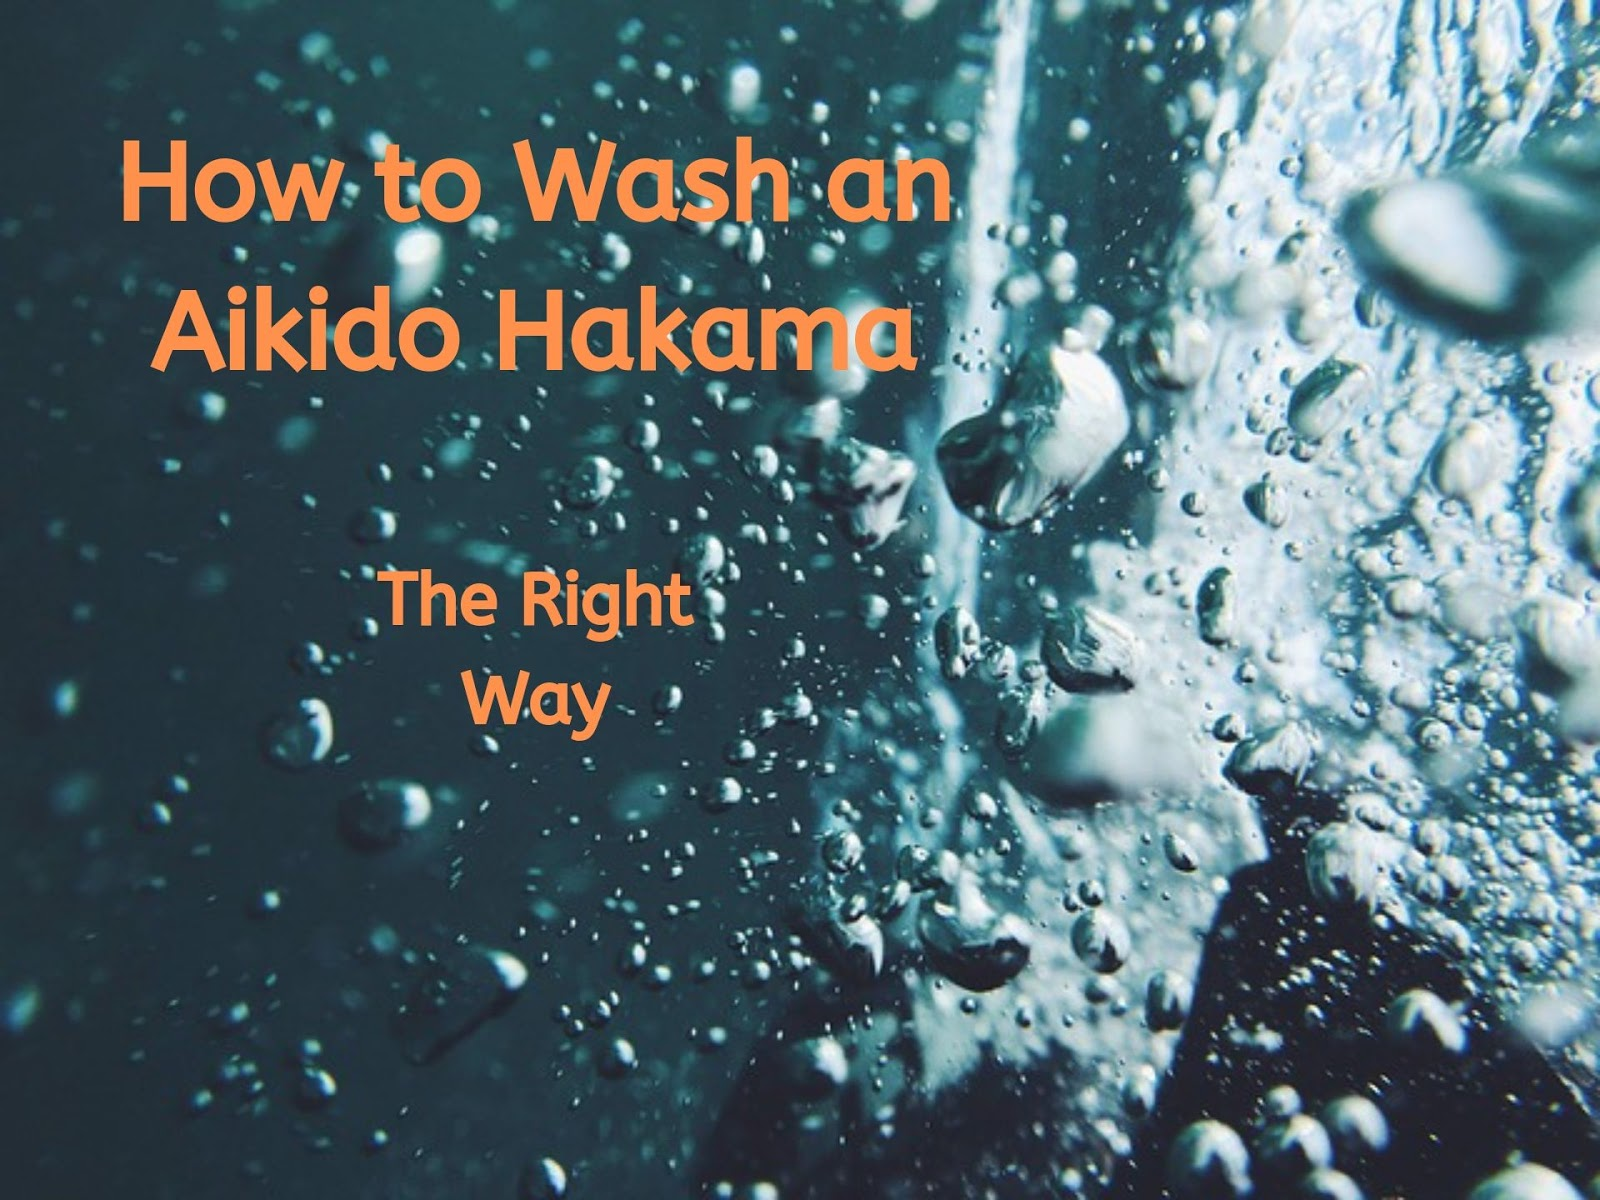 How to Wash an Aikido Hakama - The Right Way